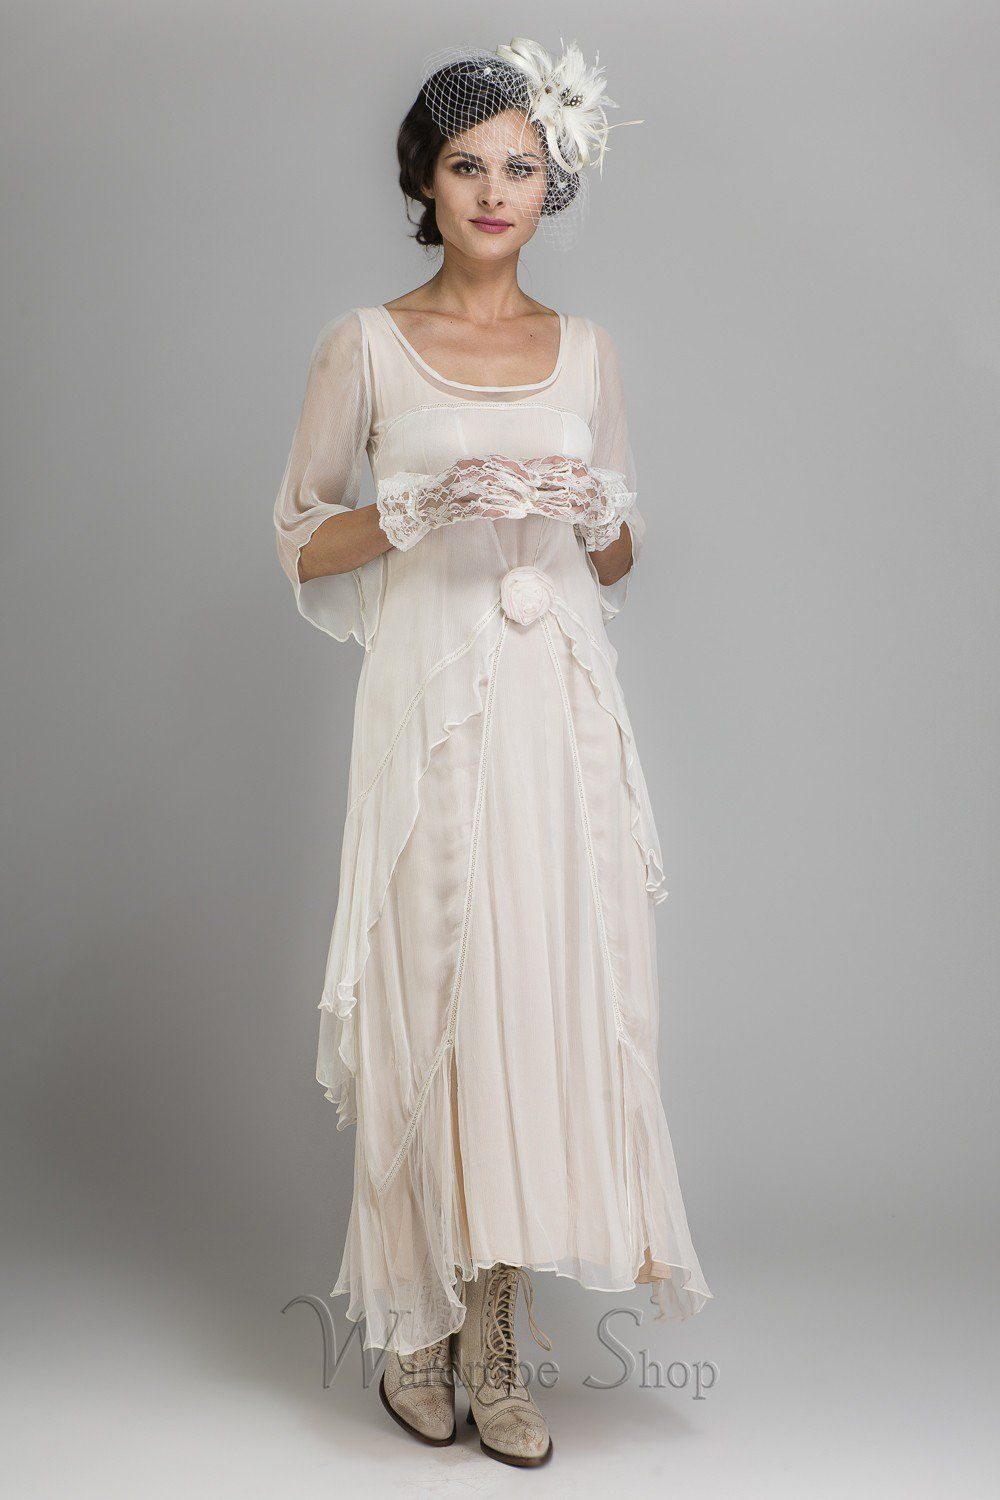 Vintage Inspired Wedding Dresses and Gowns | Vintage inspired ...